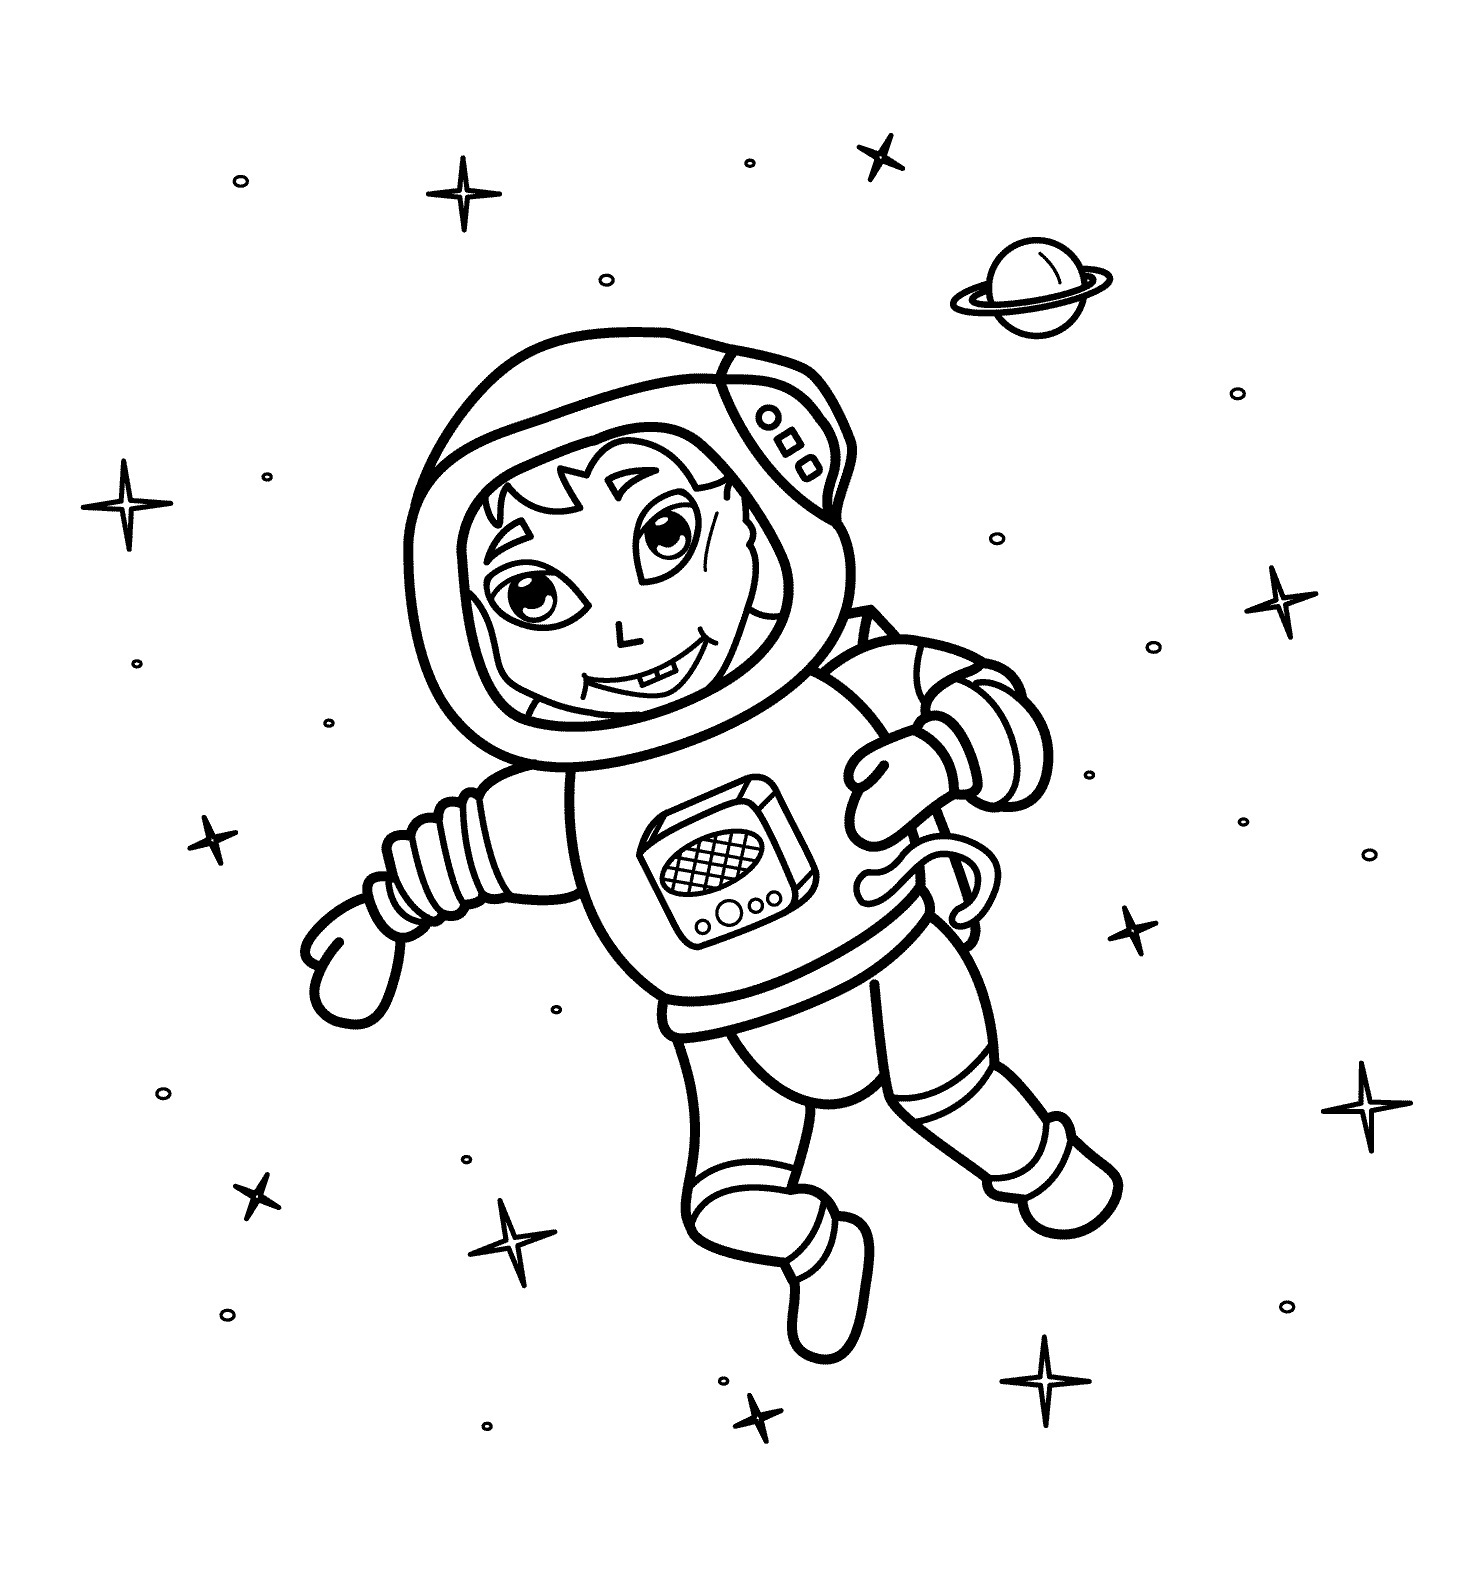 astronaut coloring for kids astronaut coloring pages to download and print for free for astronaut kids coloring